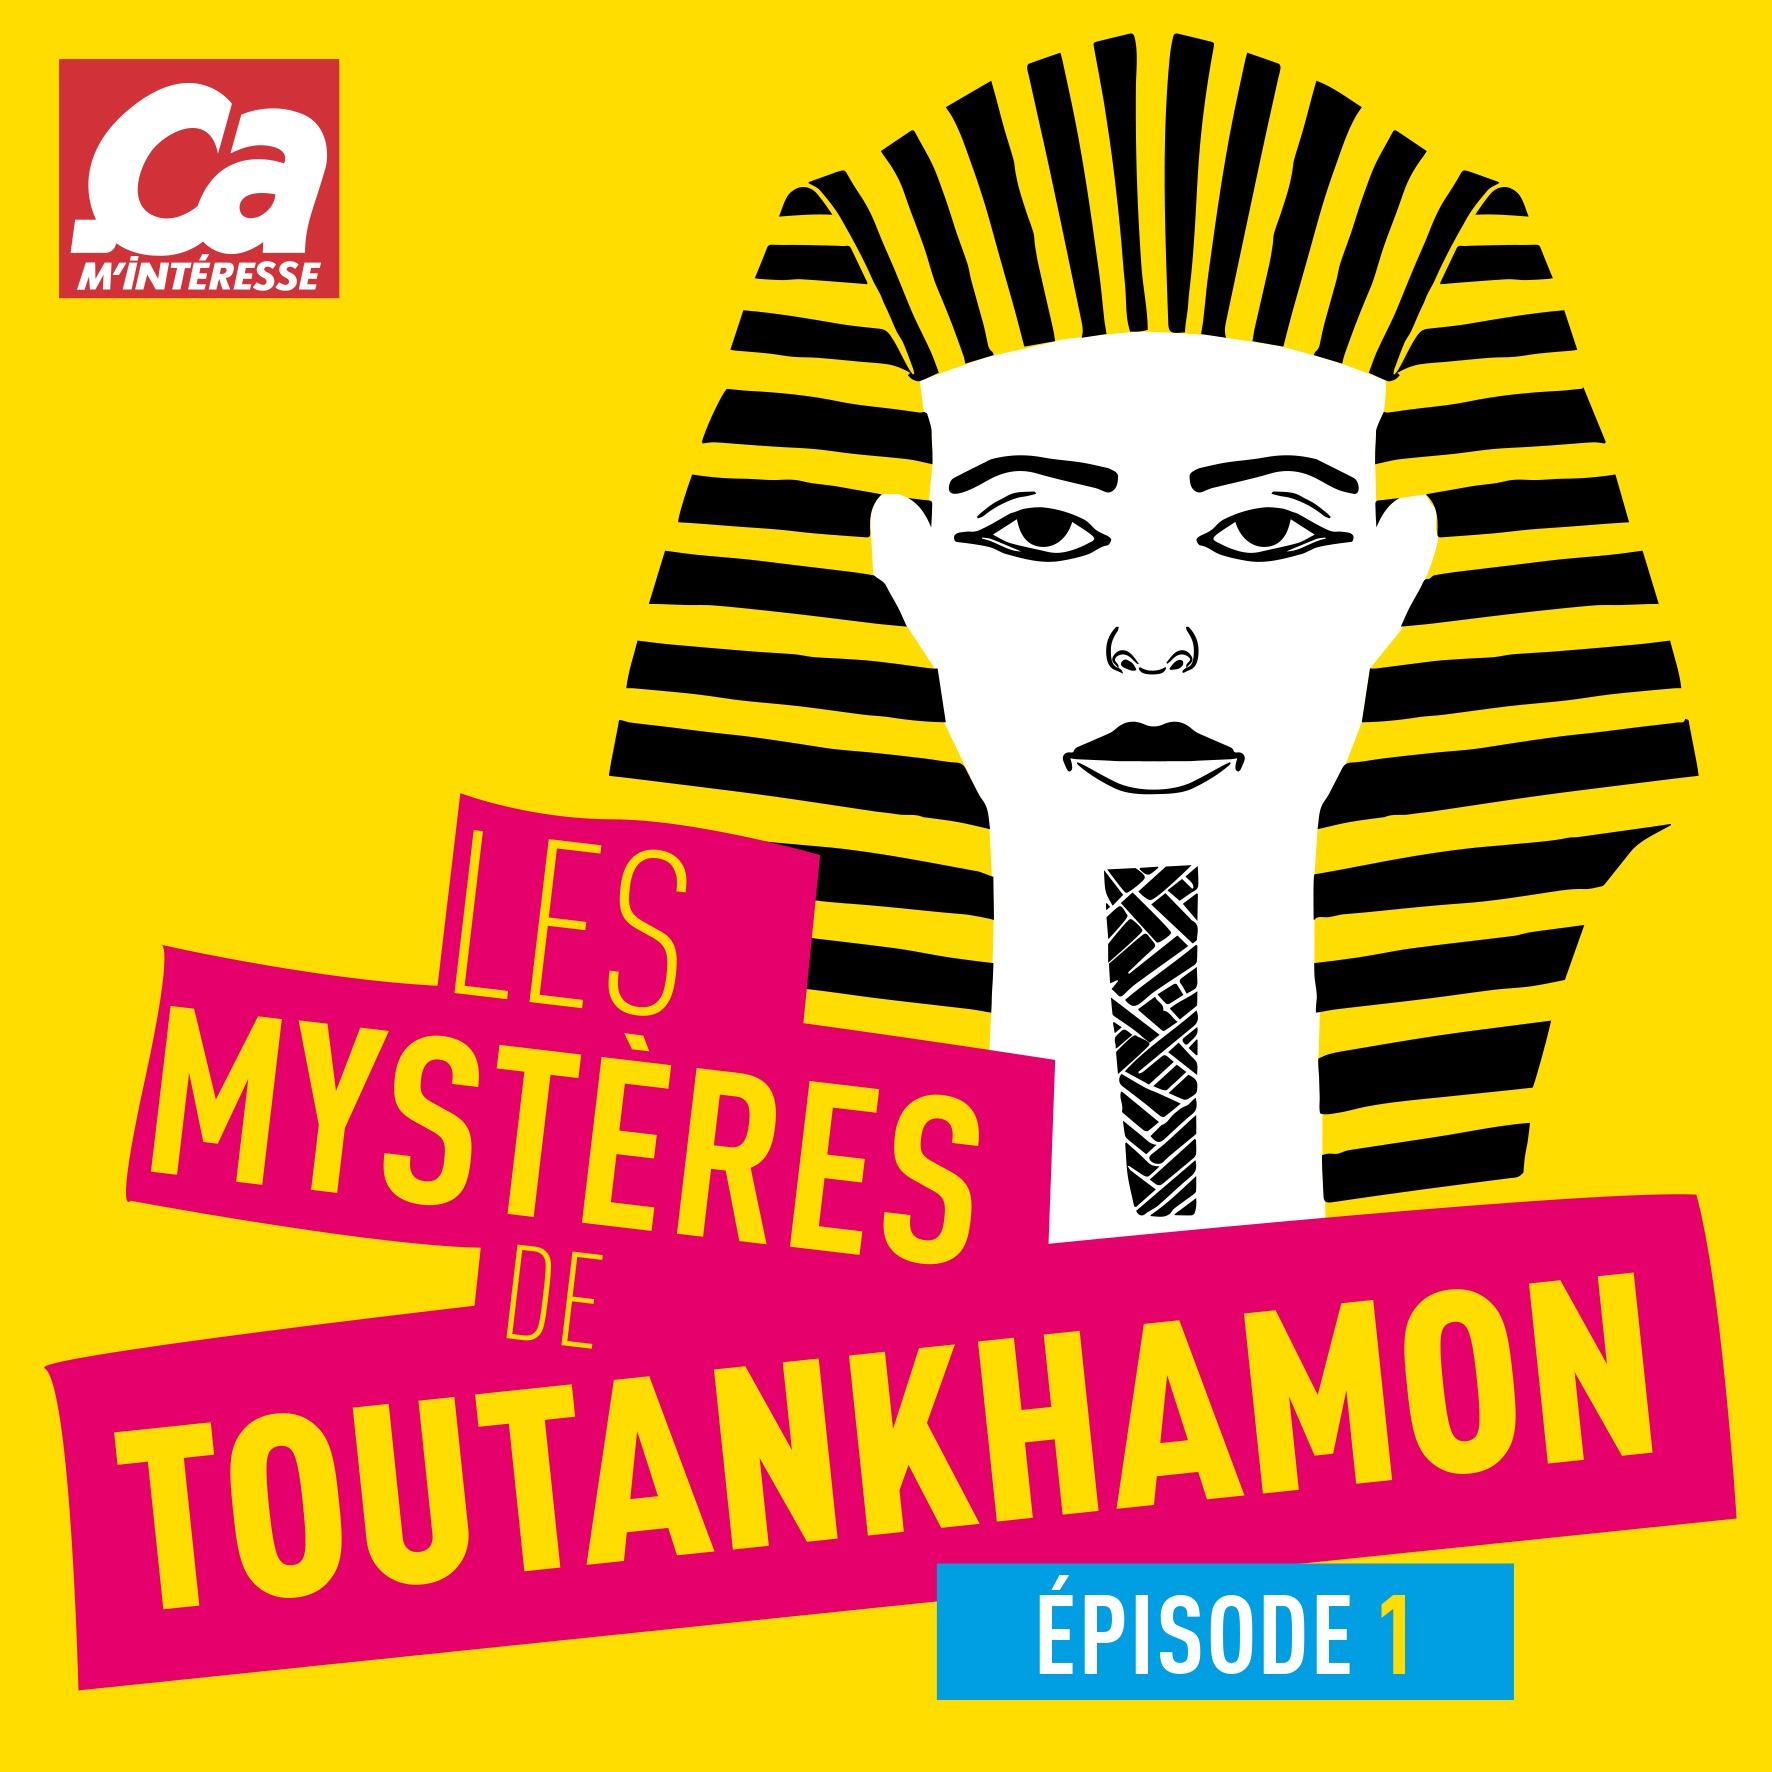 Maudit Toutankhamon !